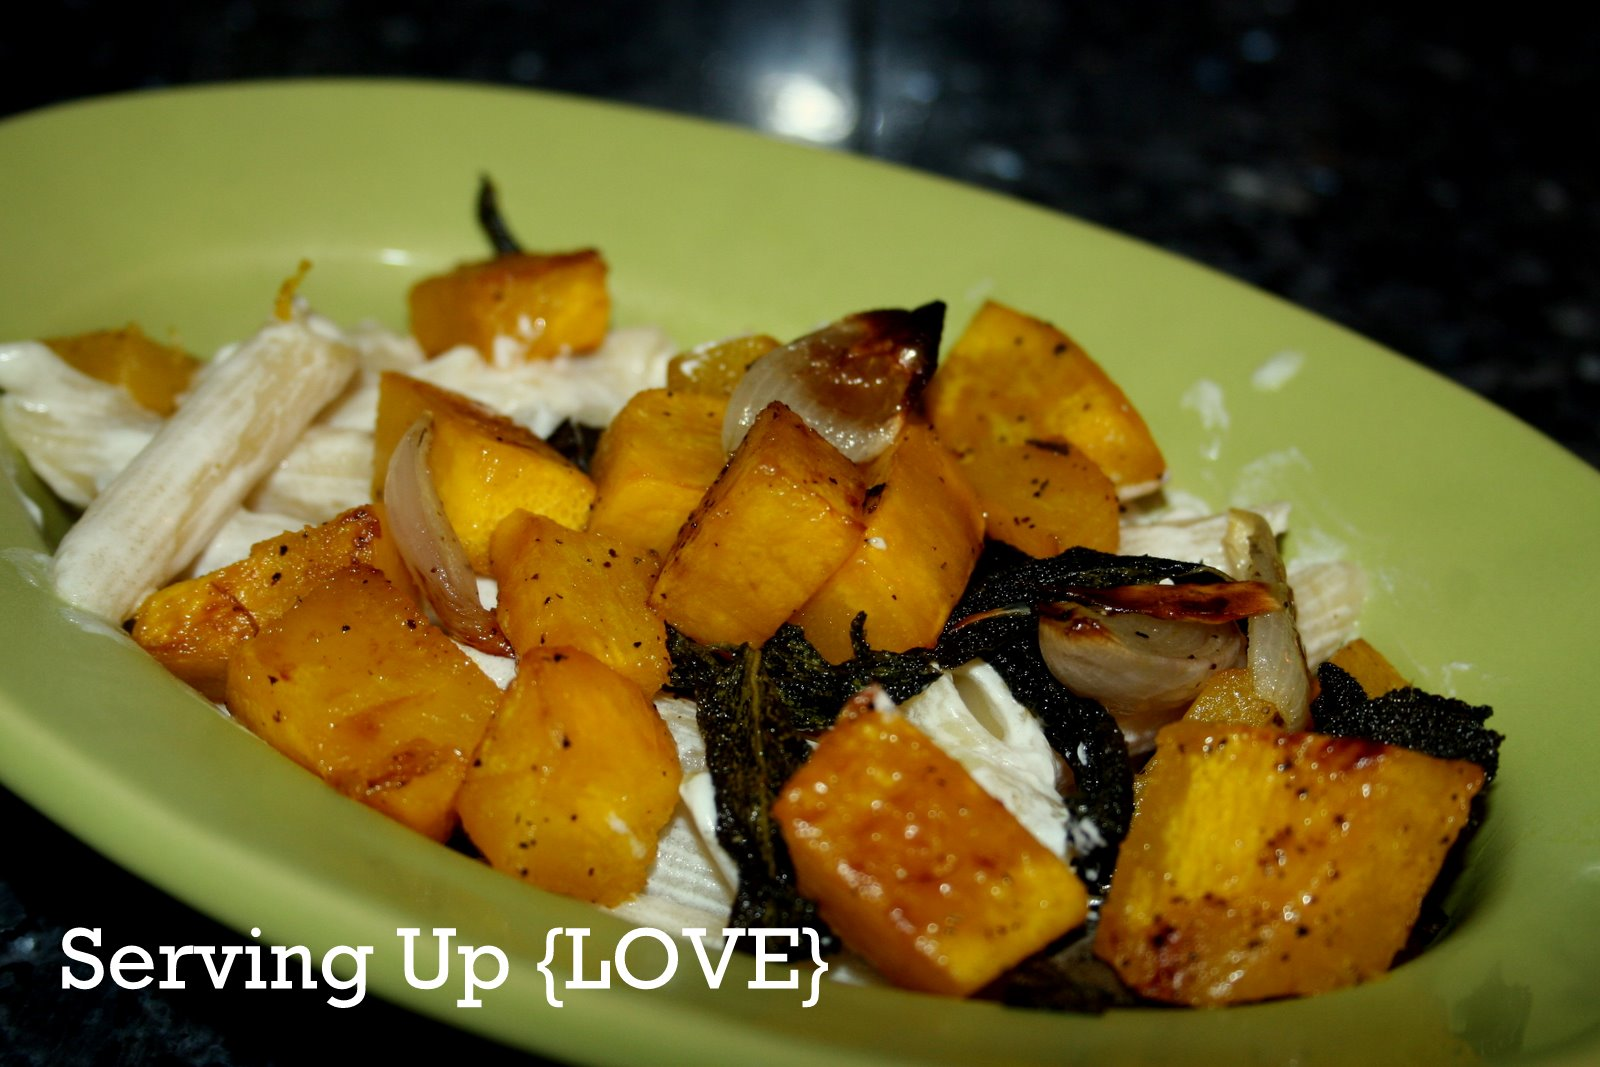 ... : Serving Up {Vegetable}: Roasted Pumpkin with Shallots and Sage